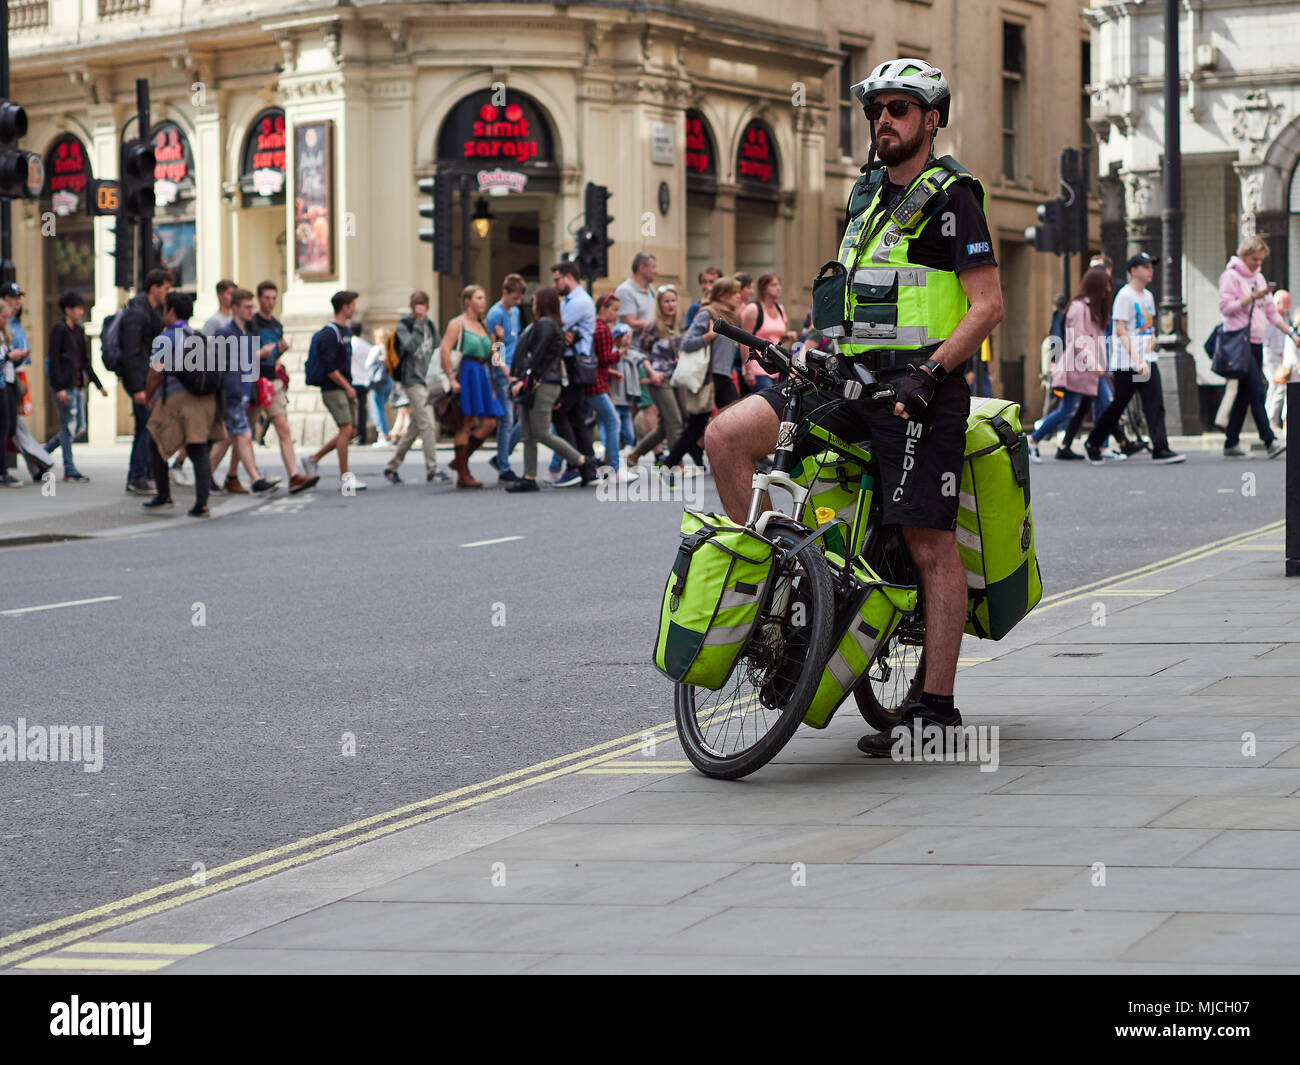 NHS London Ambulance Paramedic on a bicycle in London, UK. 2018. - Stock Image